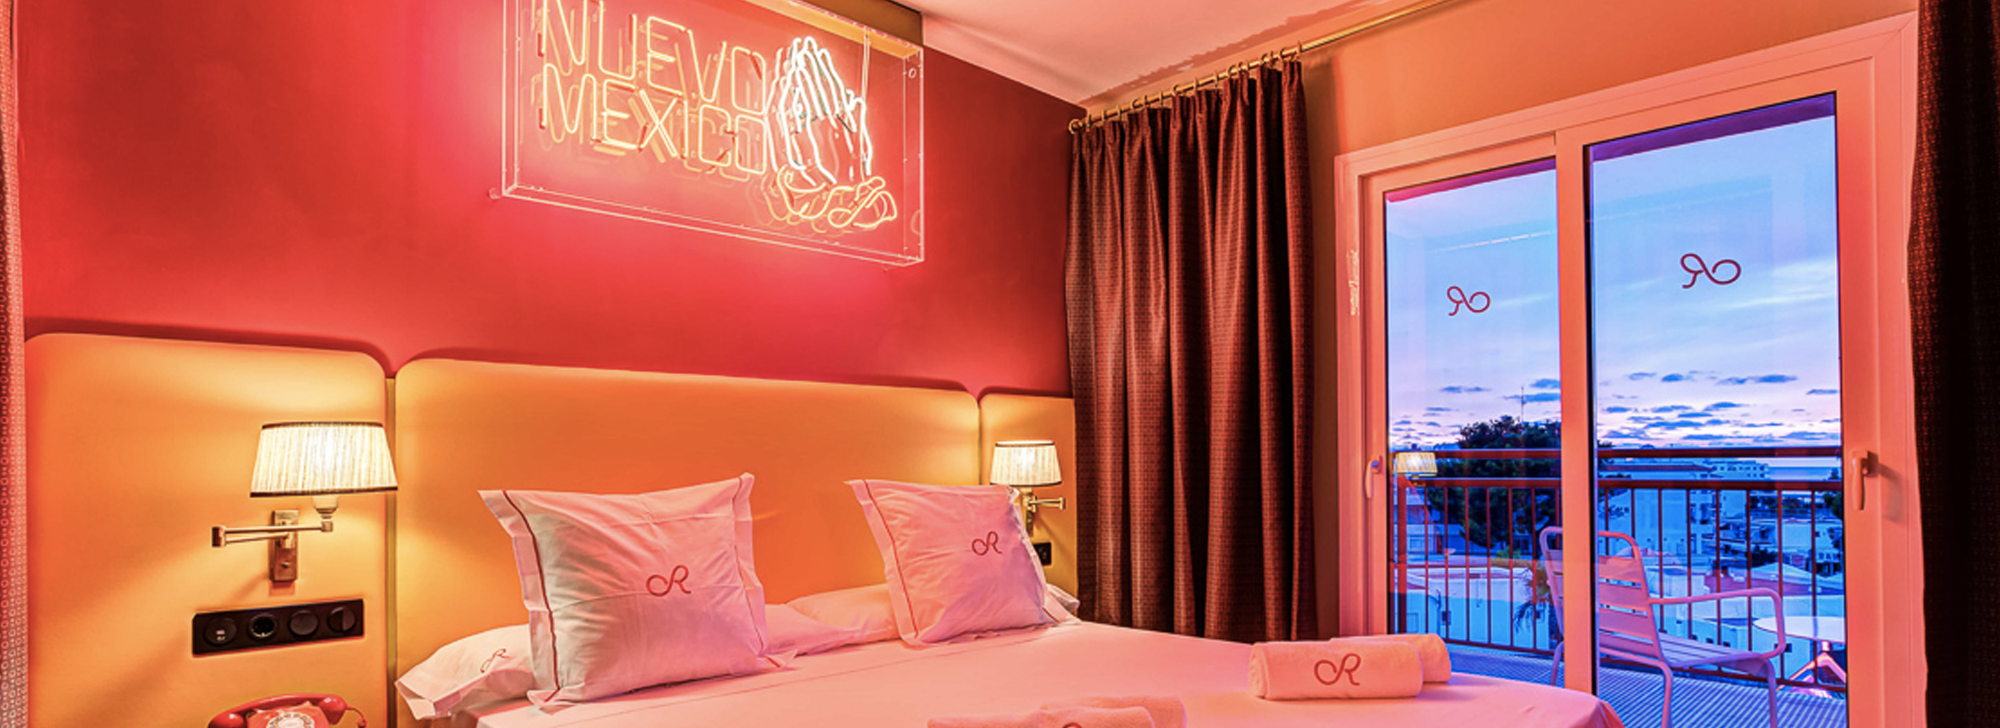 Hotels to Check-in To in Ibiza